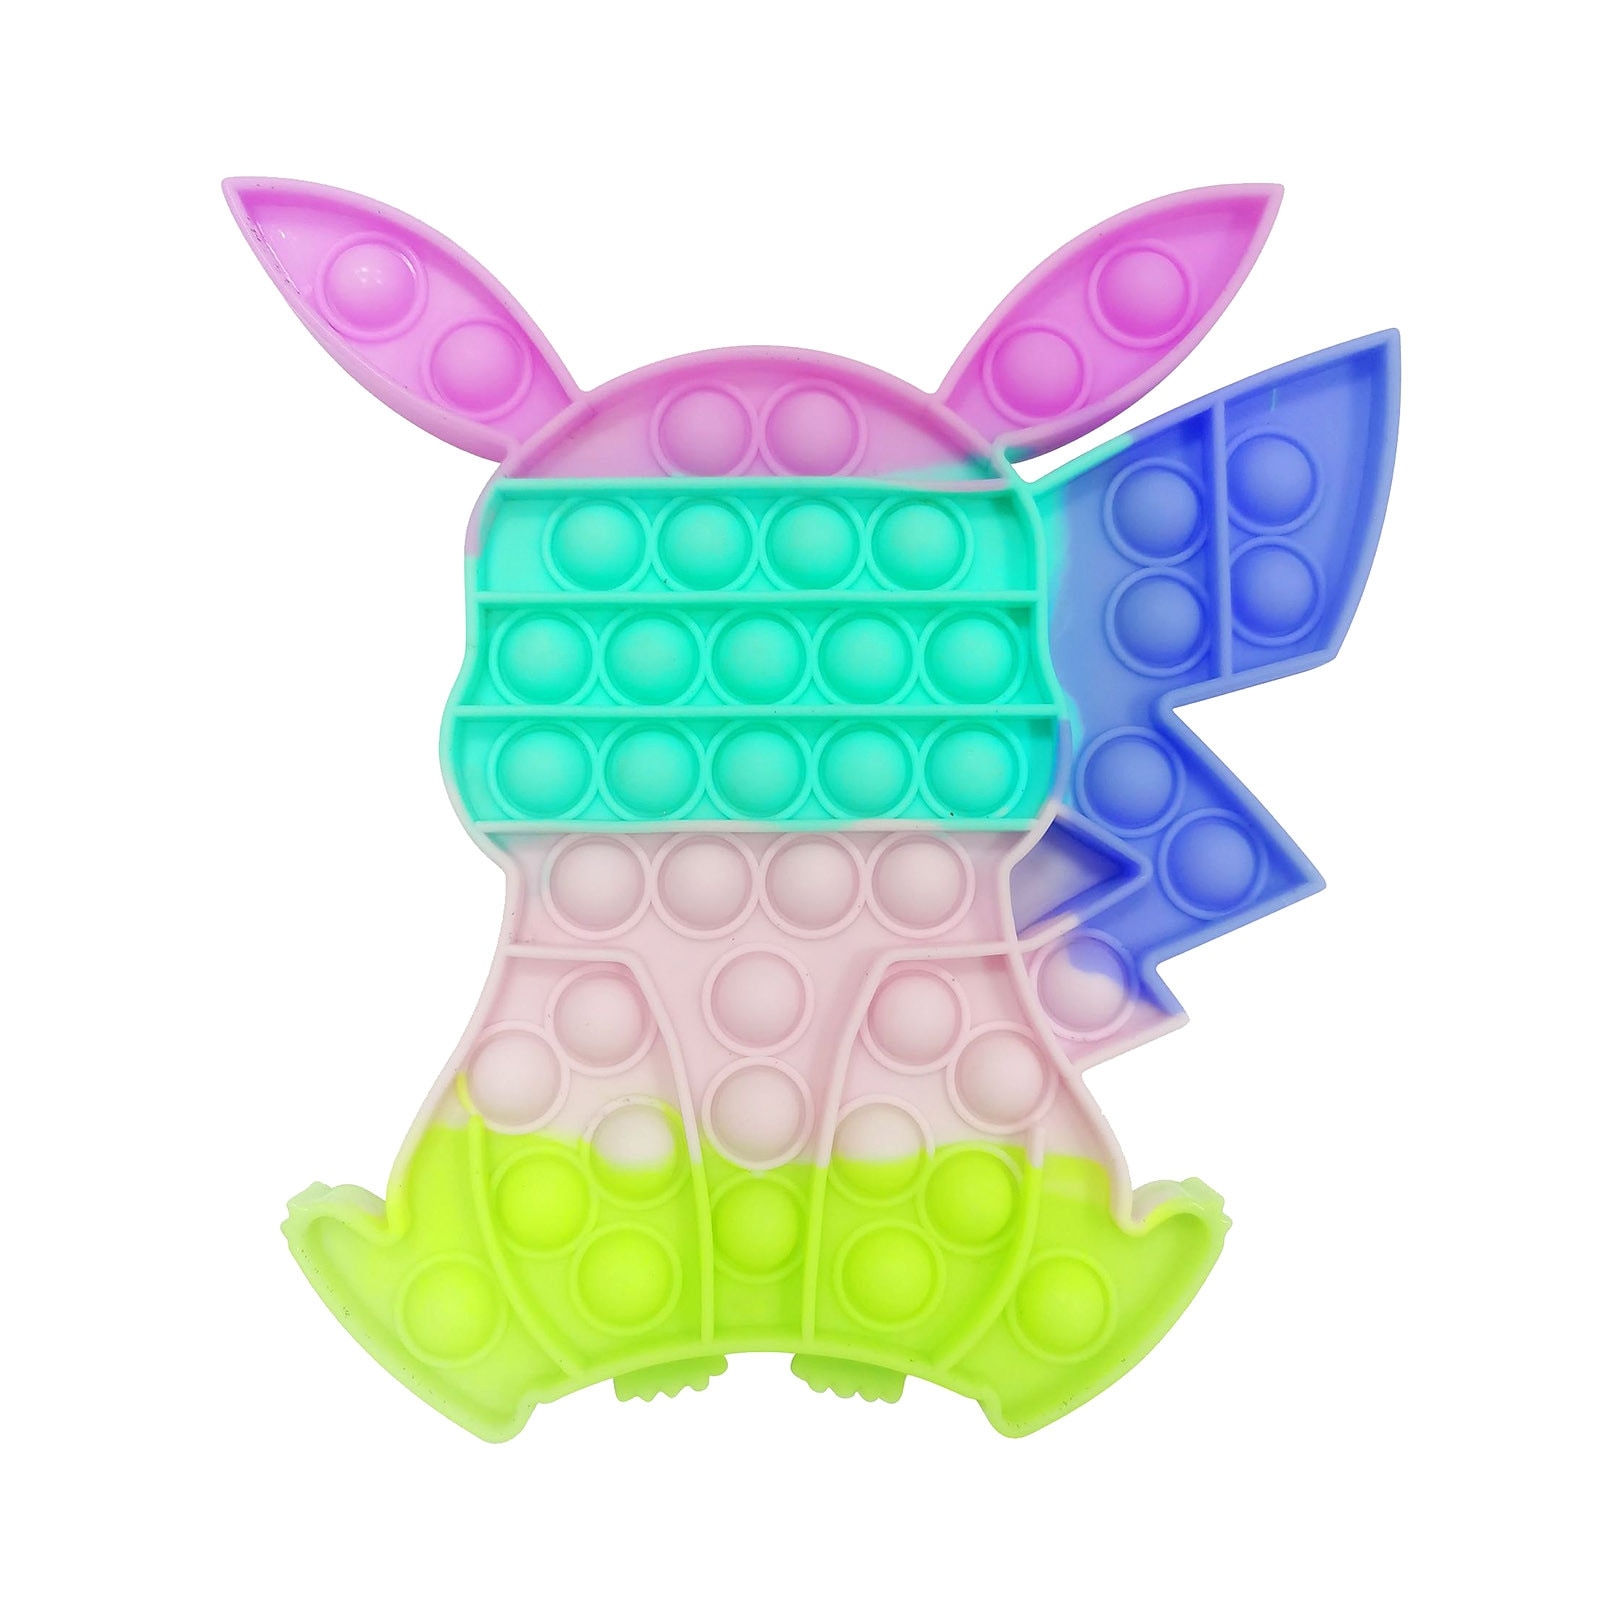 H3ea50588cc544e8ca5f05ae868d32ae54 - Fidget Toys Pack Its Square Antistress New Push Bubble Rainbow Pop For Hands Popins Squishy Pops Reliver Stress For Adults